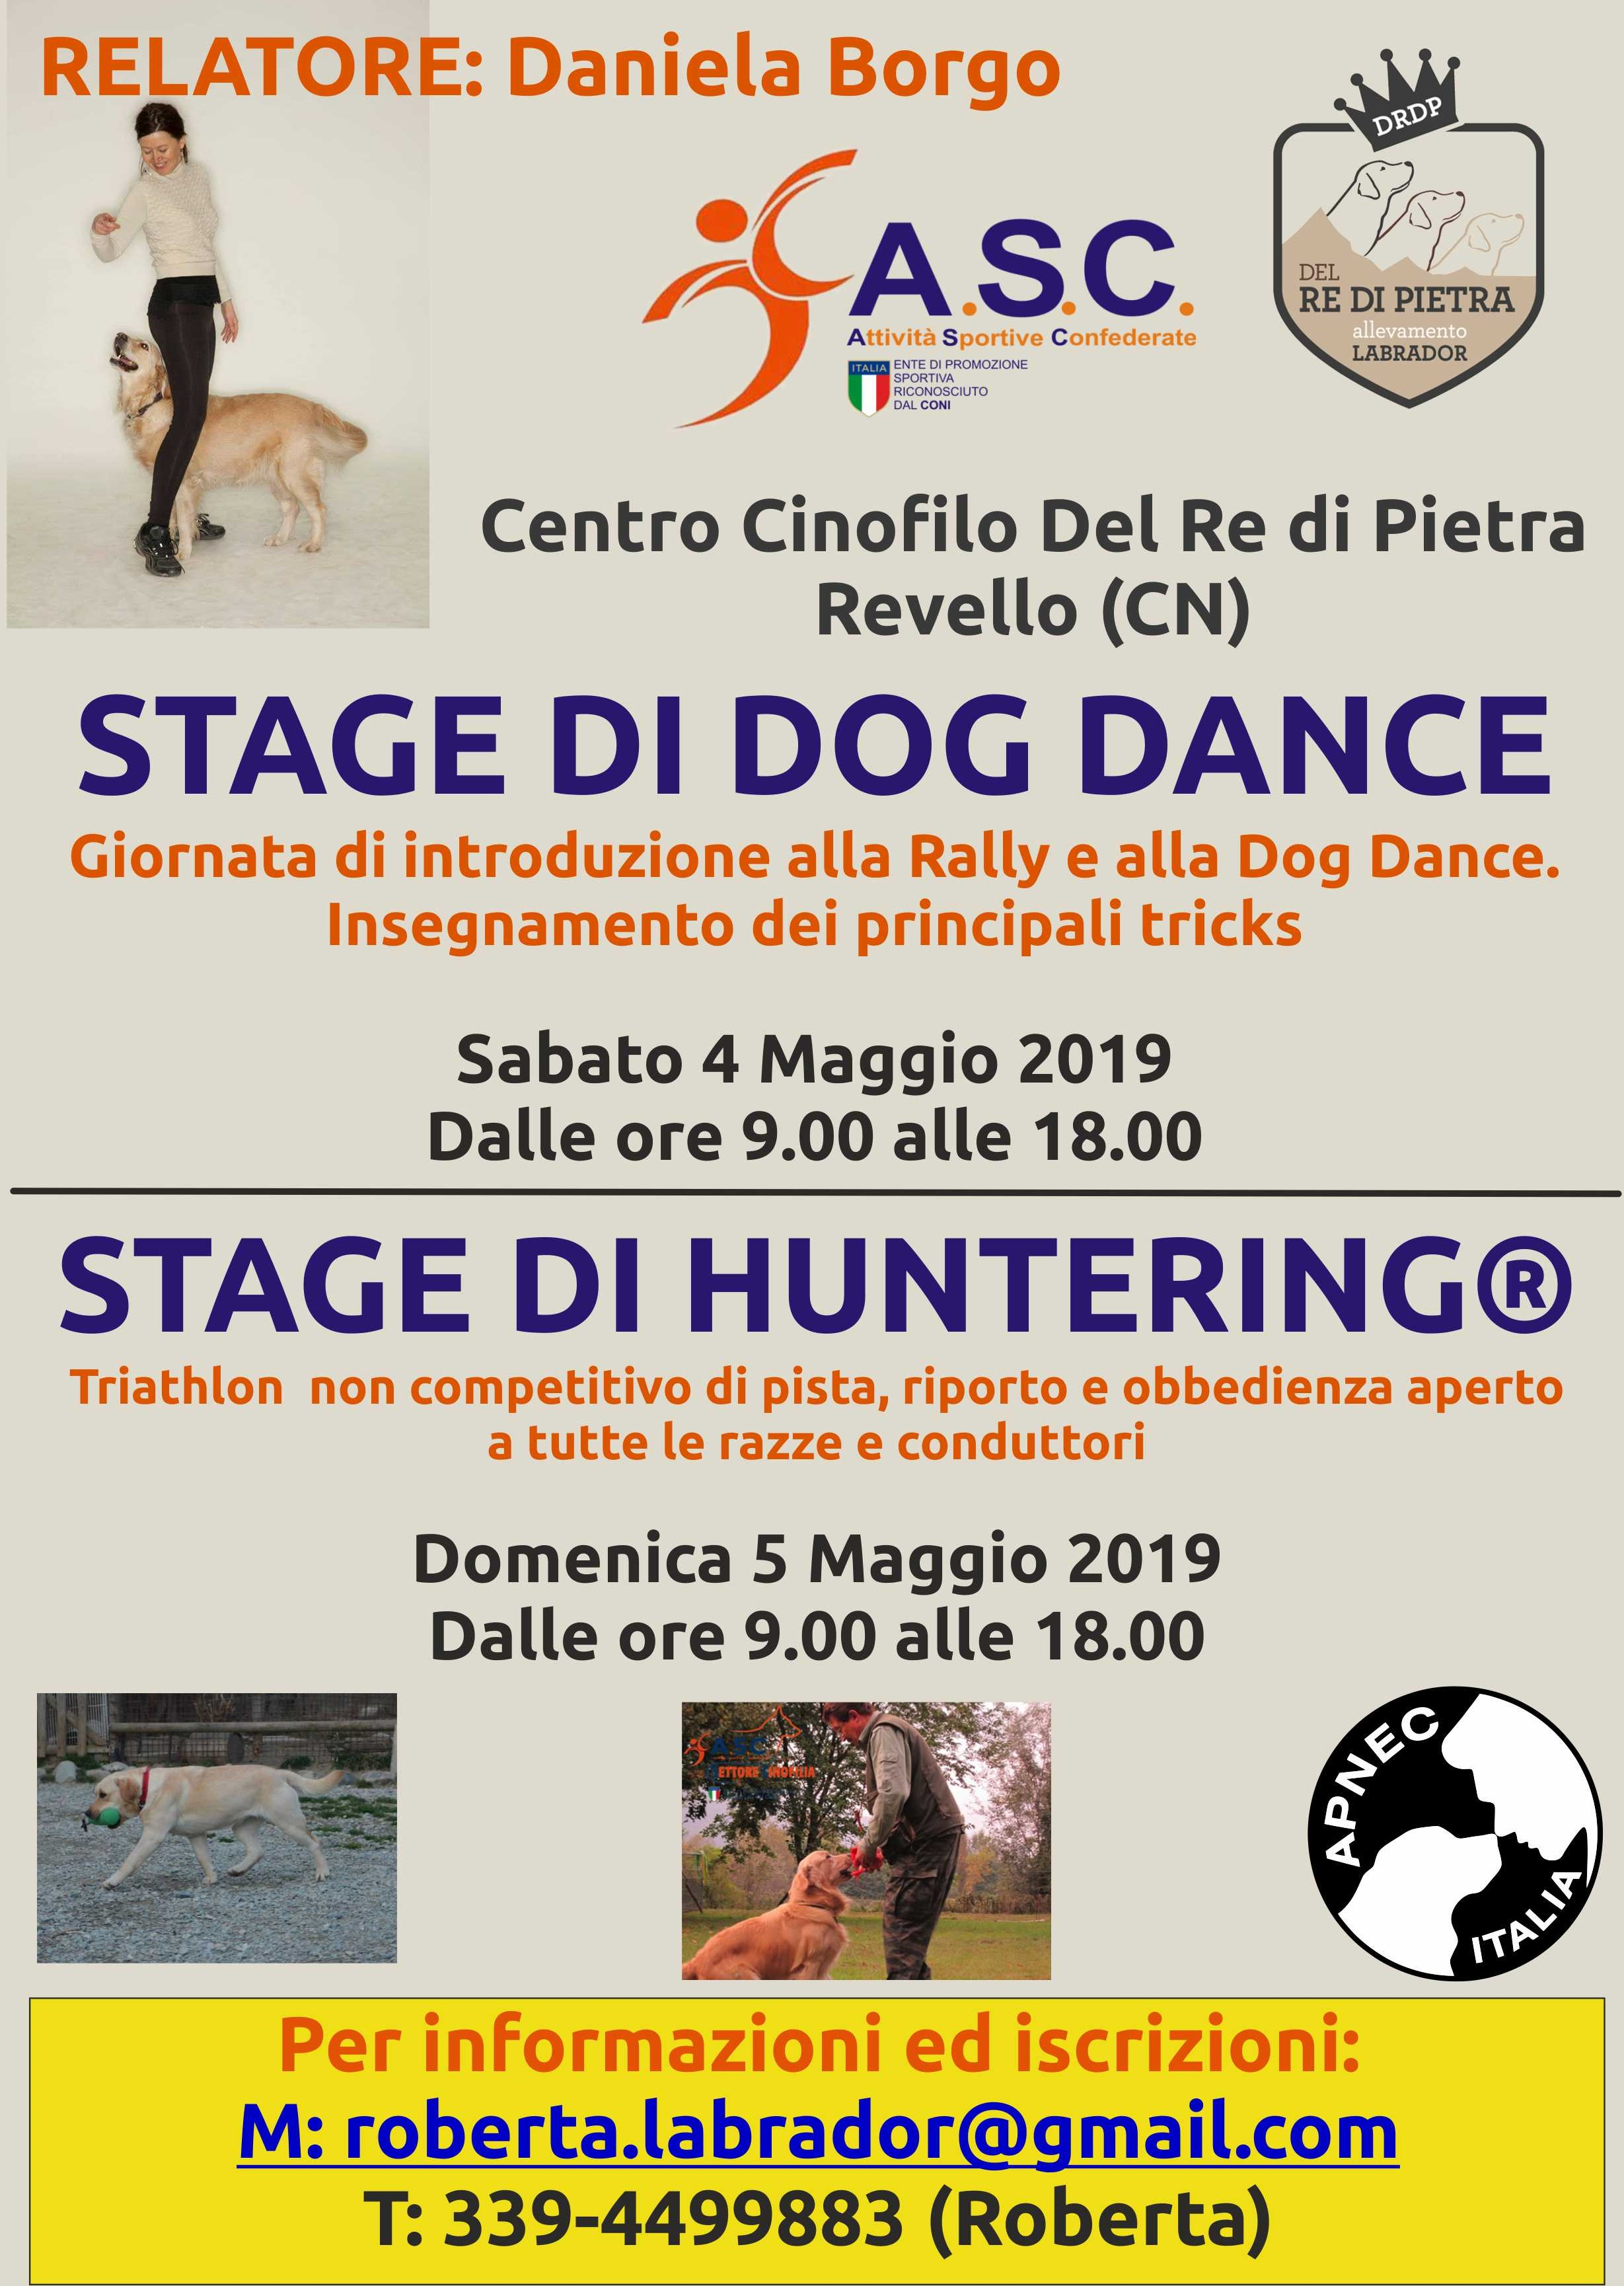 STAGE DI DOG DANCE & HUNTERING®